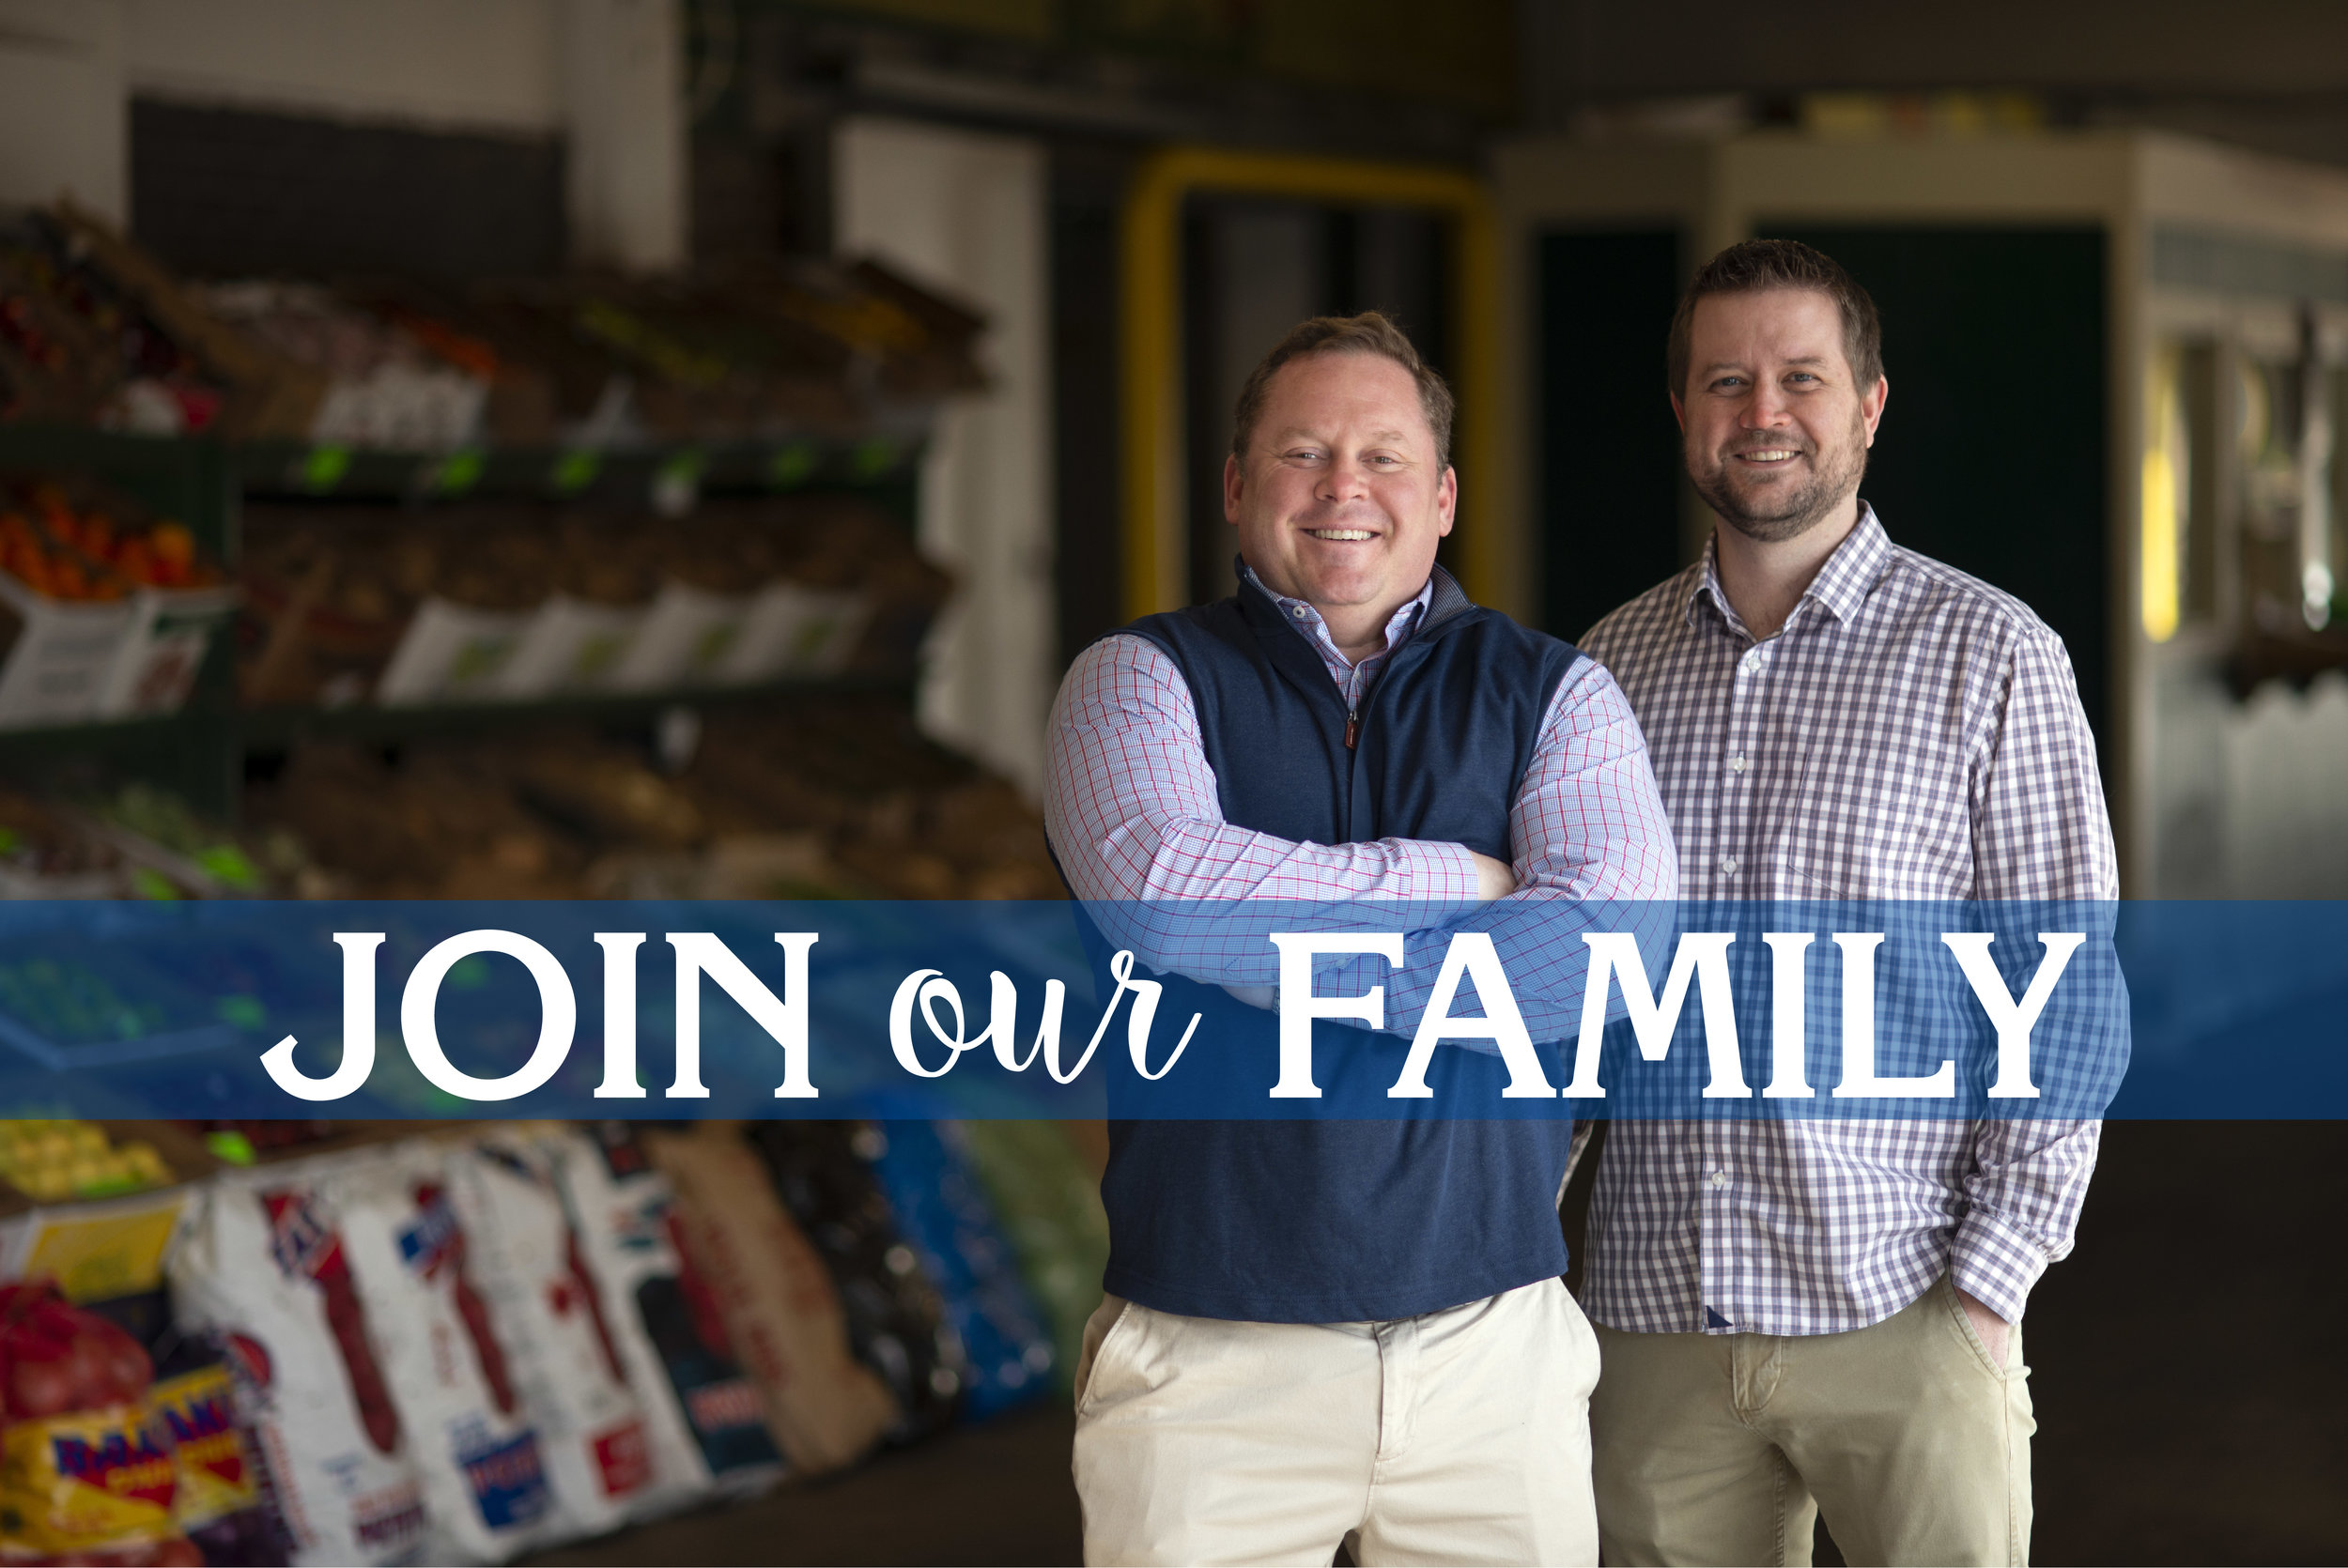 join our family-01.jpg